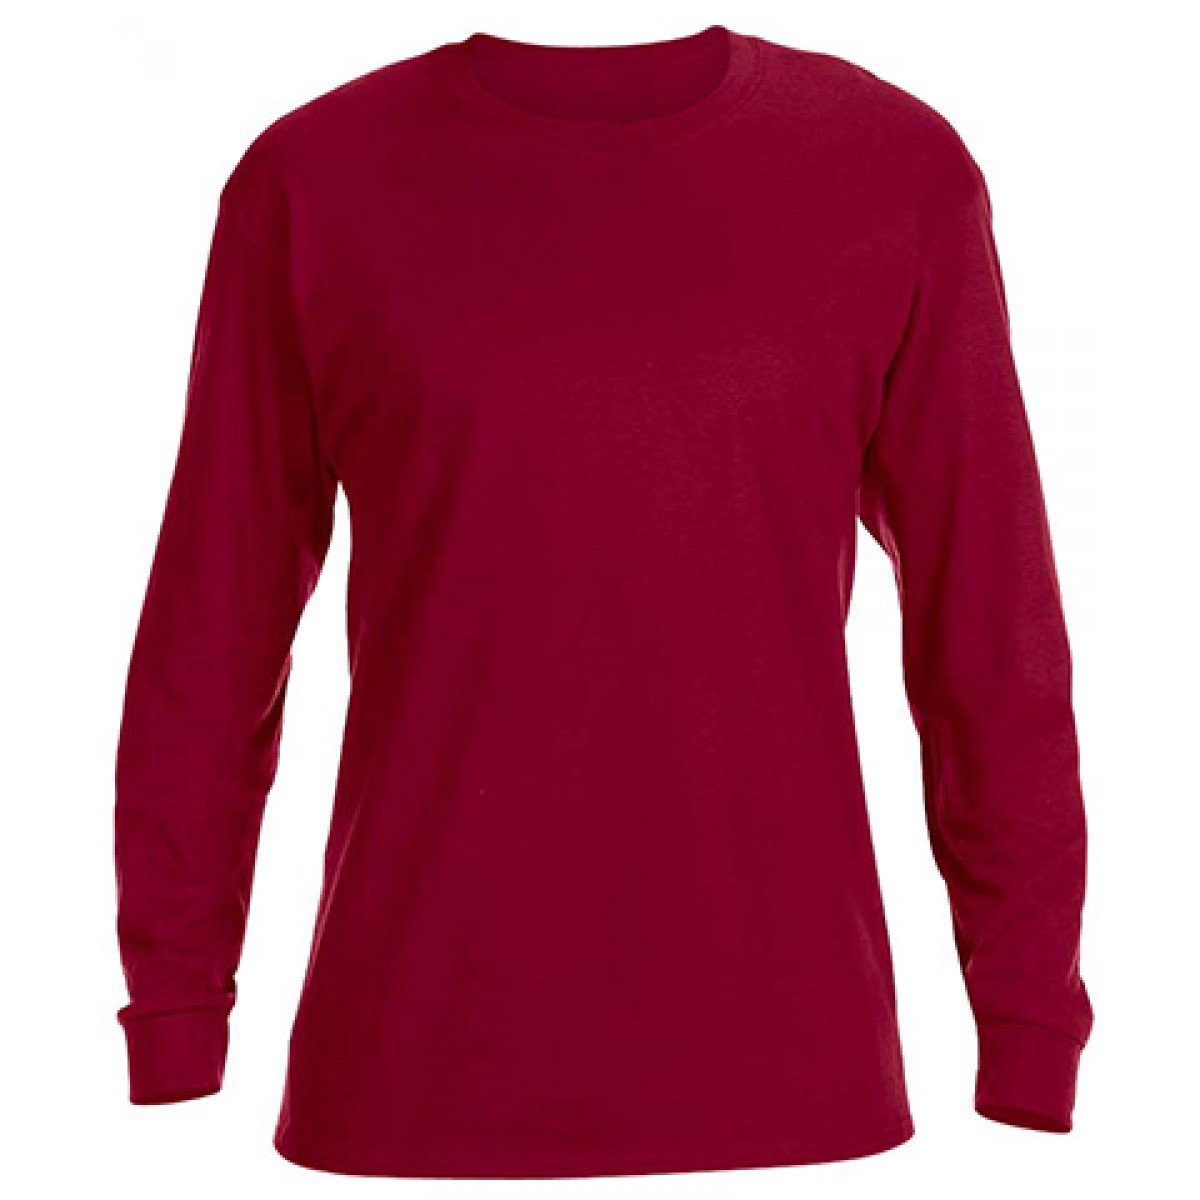 Basic Long Sleeve Crew Neck -Cardinal Red-XL